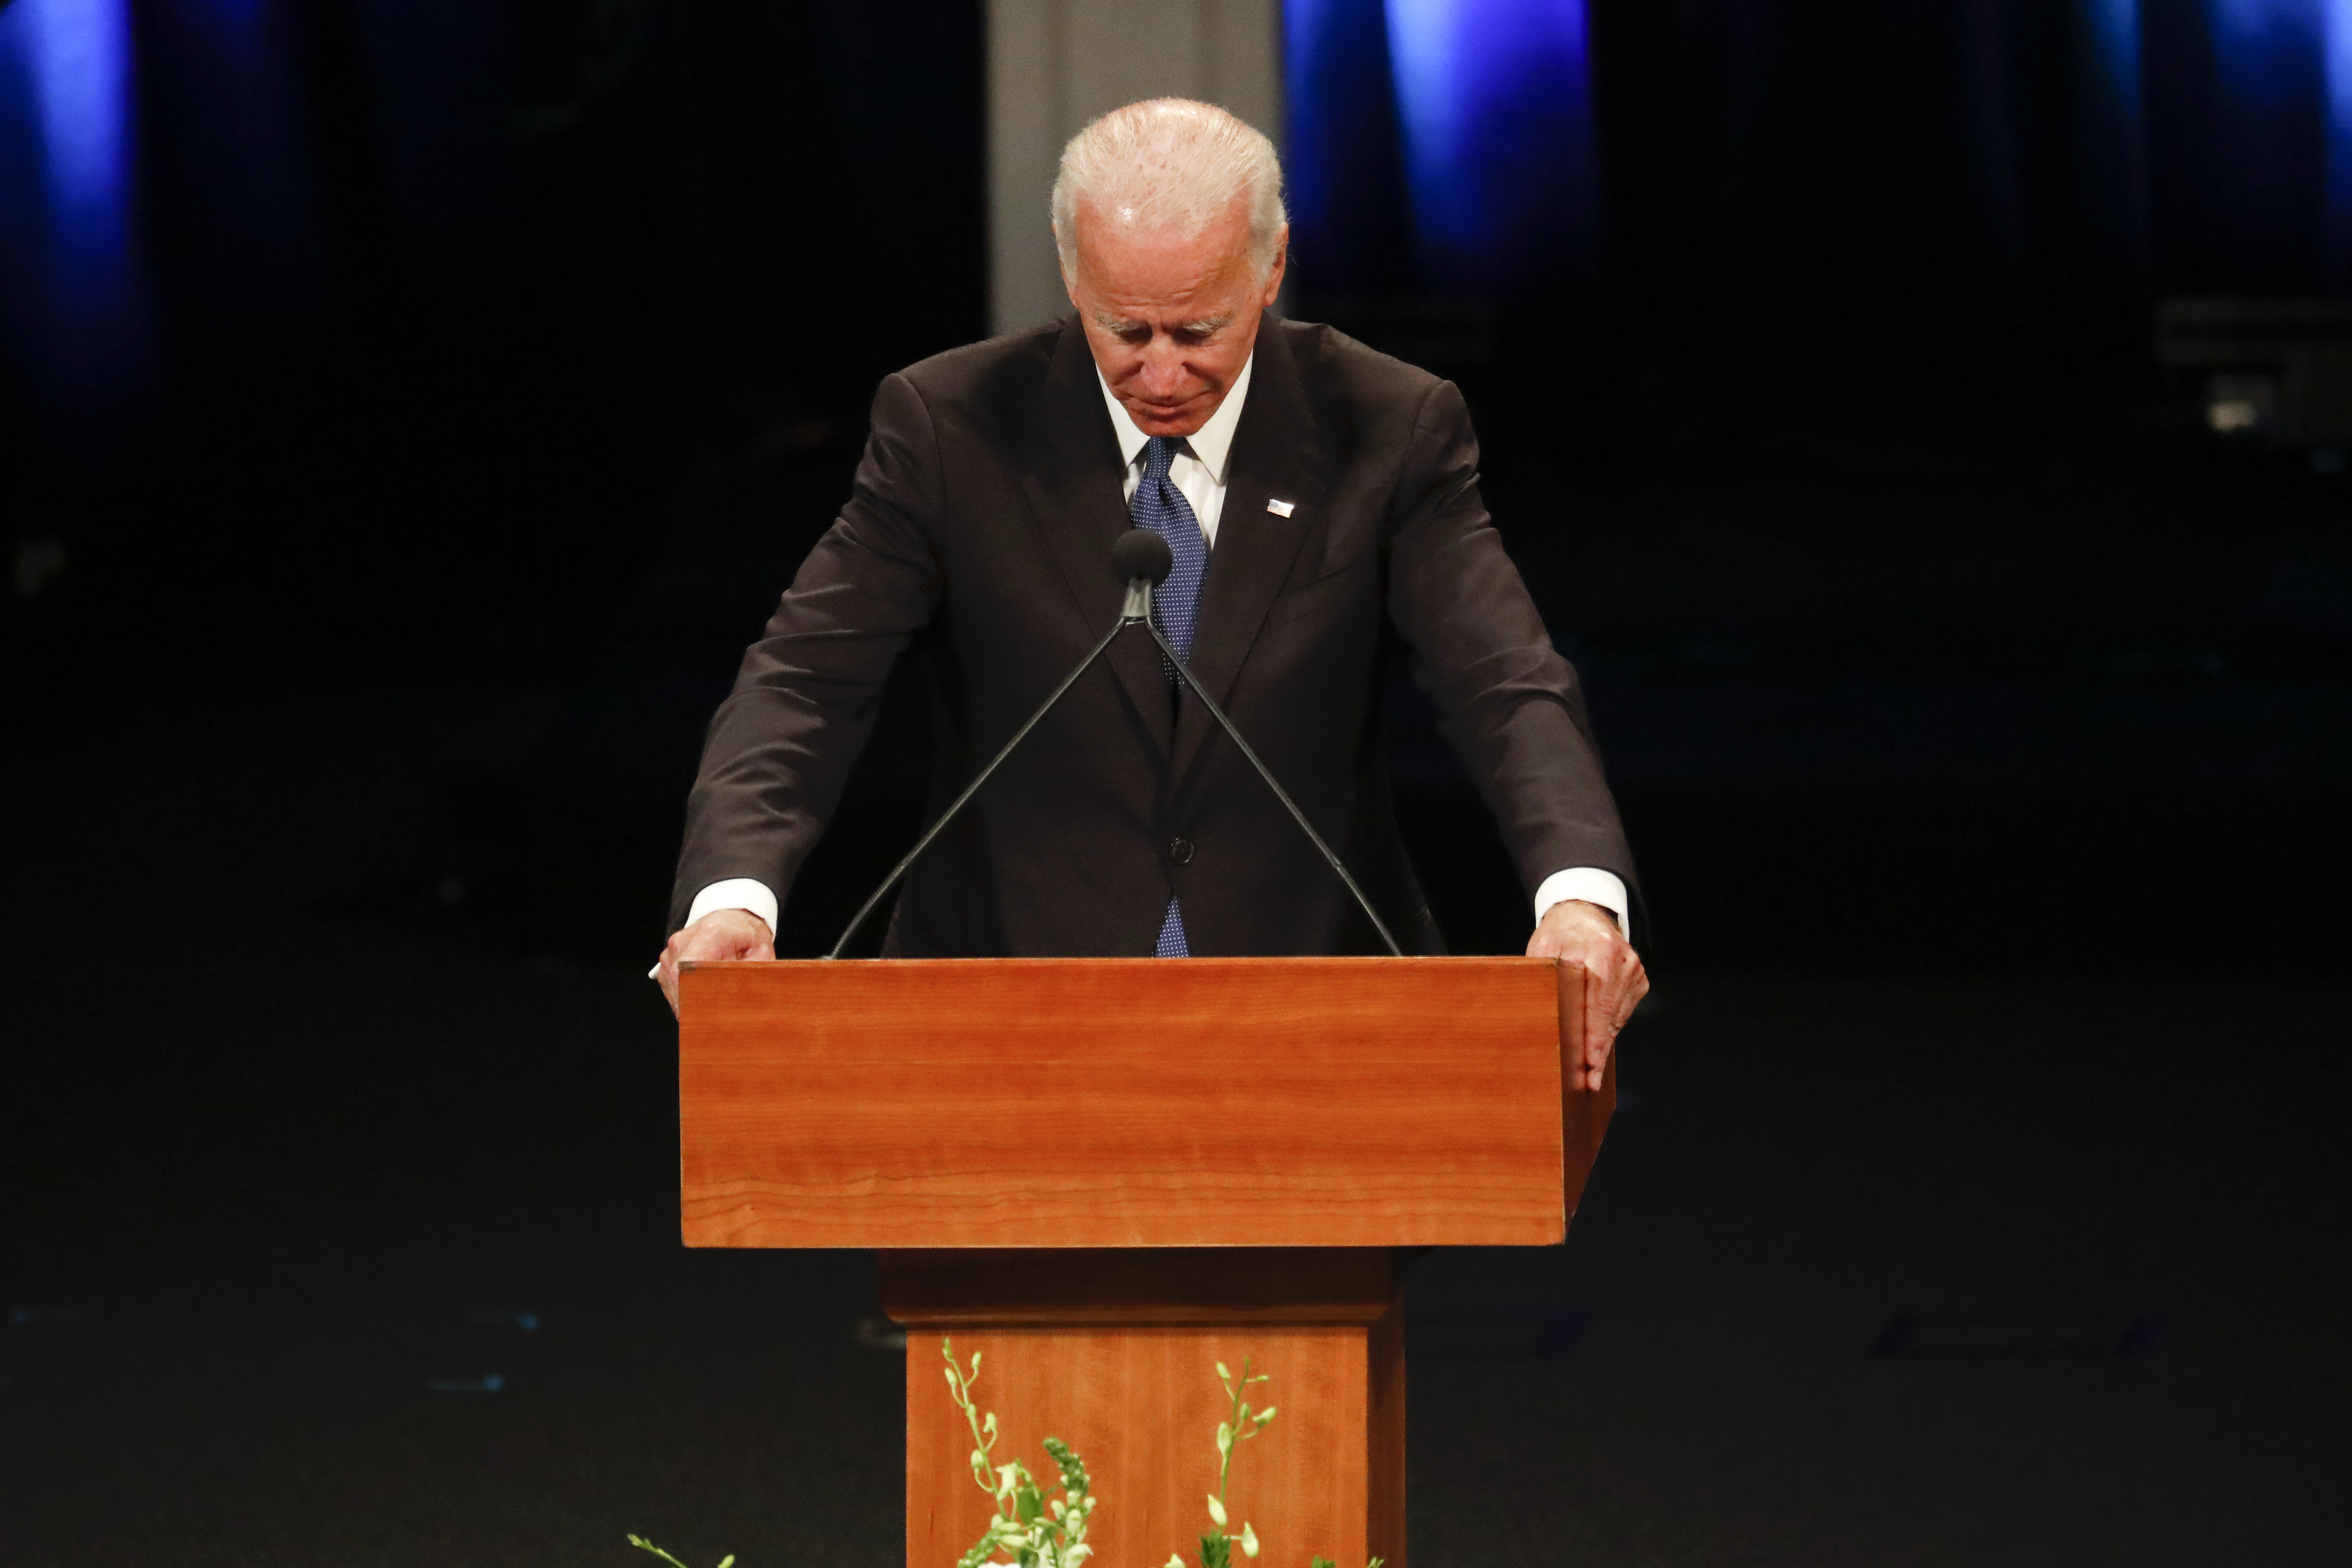 Former U.S. Vice President Joe Biden gives a tribute during memorial service at North Phoenix Baptist Church for Sen. John McCain, R-Ariz. on August 30, 2018 in Phoenix, Arizona. Thousands are expected for the memorial which will include tributes and readings for the late senator who died August 25 at the age of 81 after a long battle with Glioblastoma, a form of brain cancer.